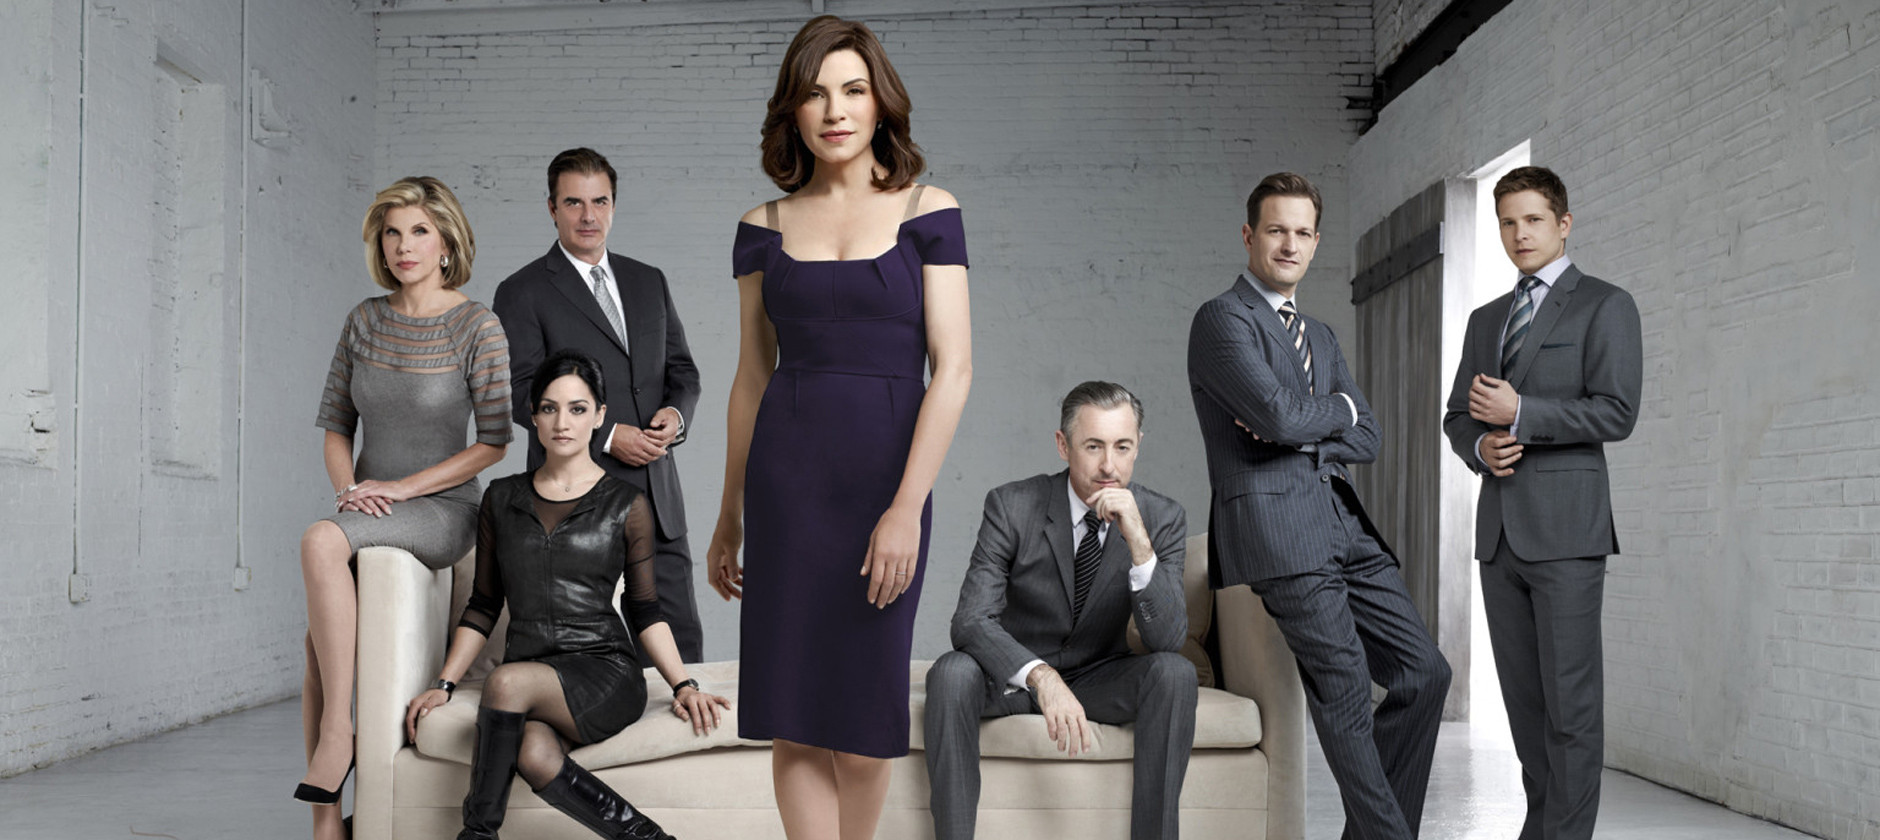 The good wife - La serie completa: un intreccio di questioni legali e politica